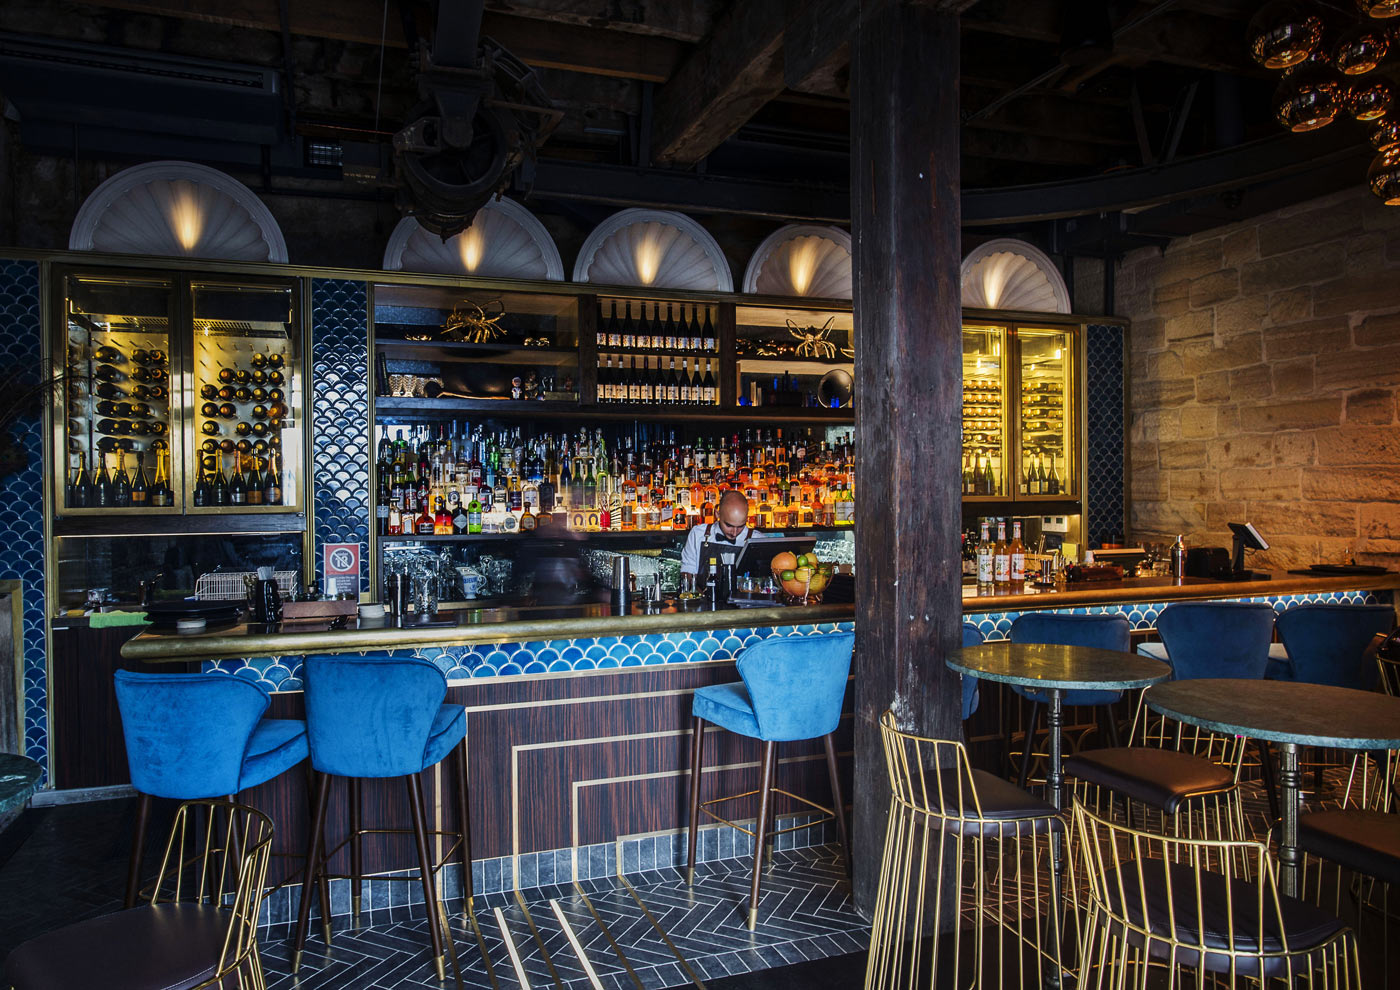 Take A Look At The Cocktail List And Go Inside New Sydney